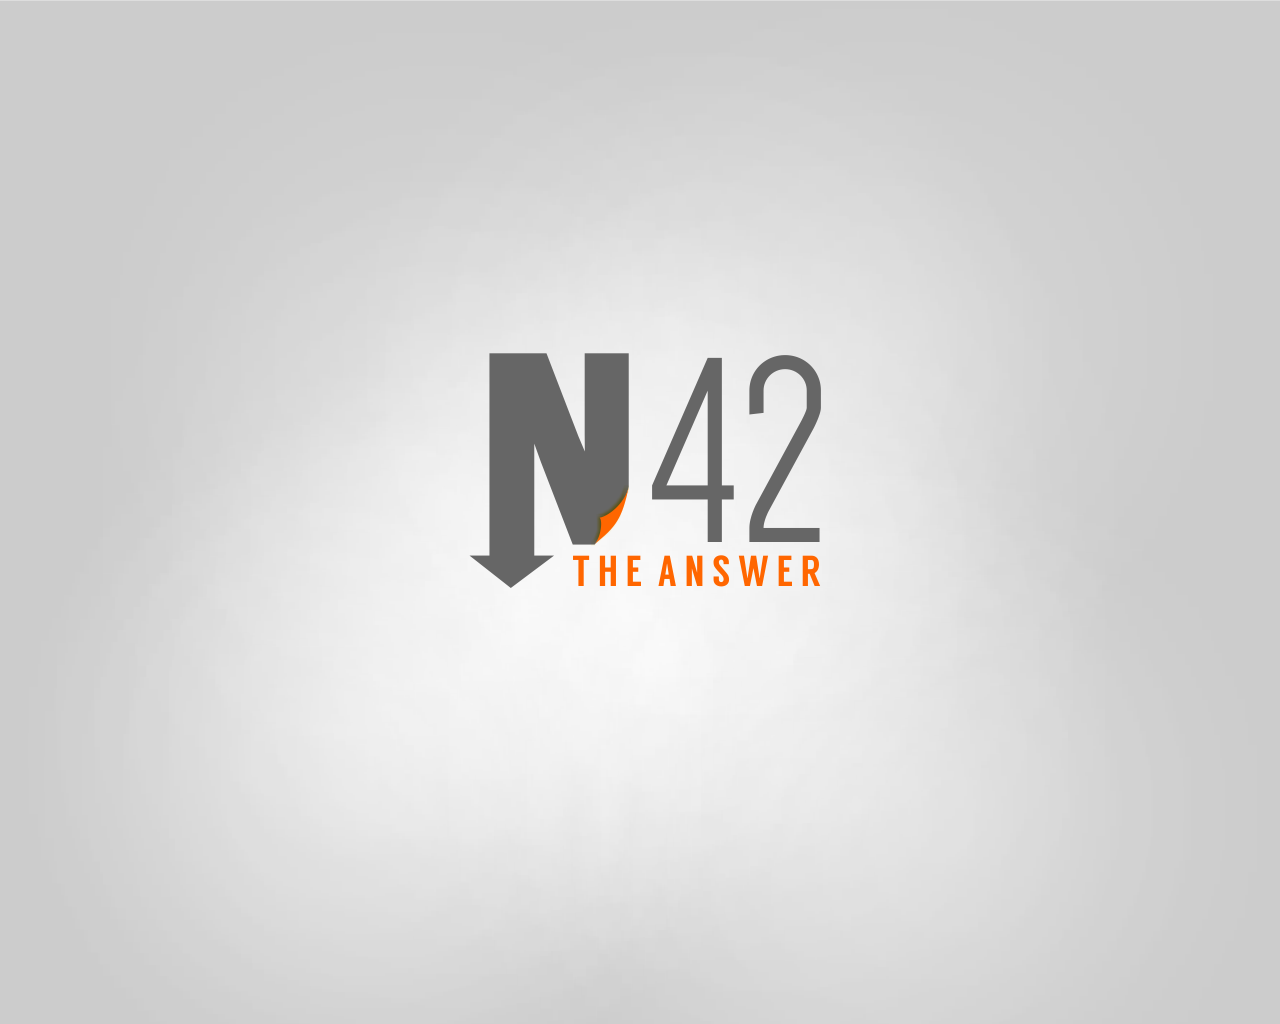 Logo Design by Q_Division_Designs - Entry No. 63 in the Logo Design Contest Artistic Logo Design for Number 42.